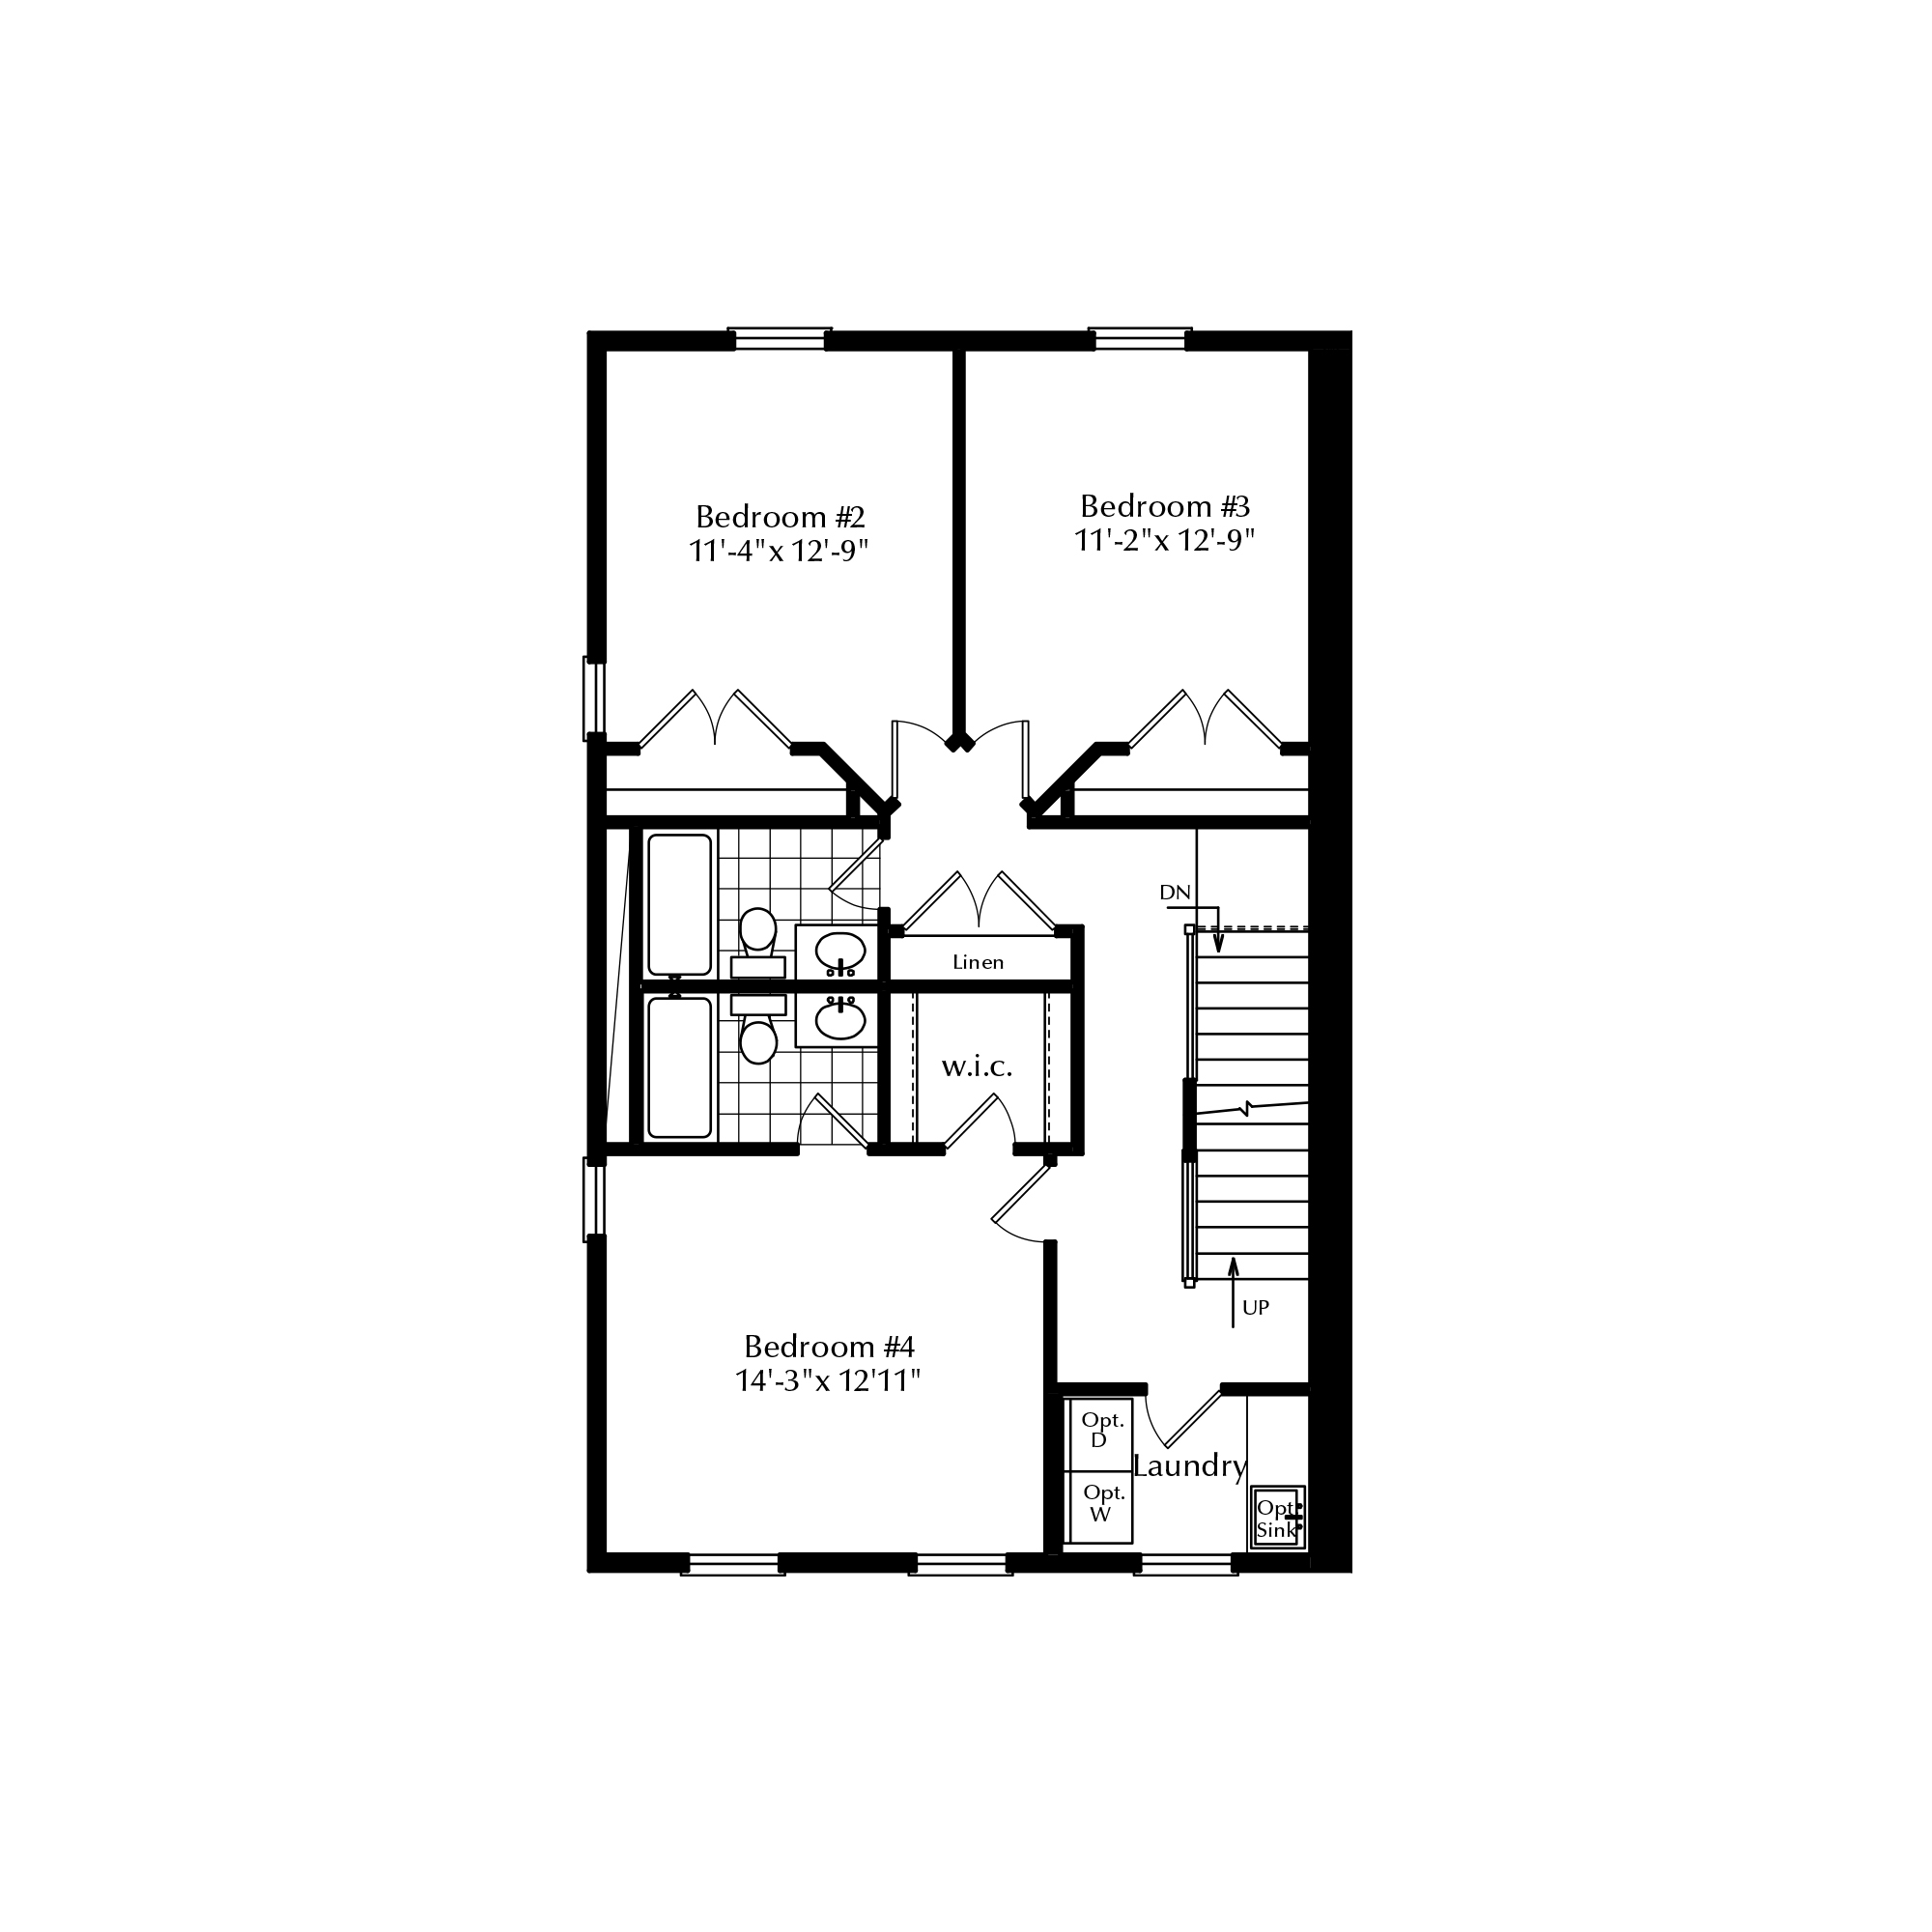 Second Floor with Two Bathrooms and Third Floor Master